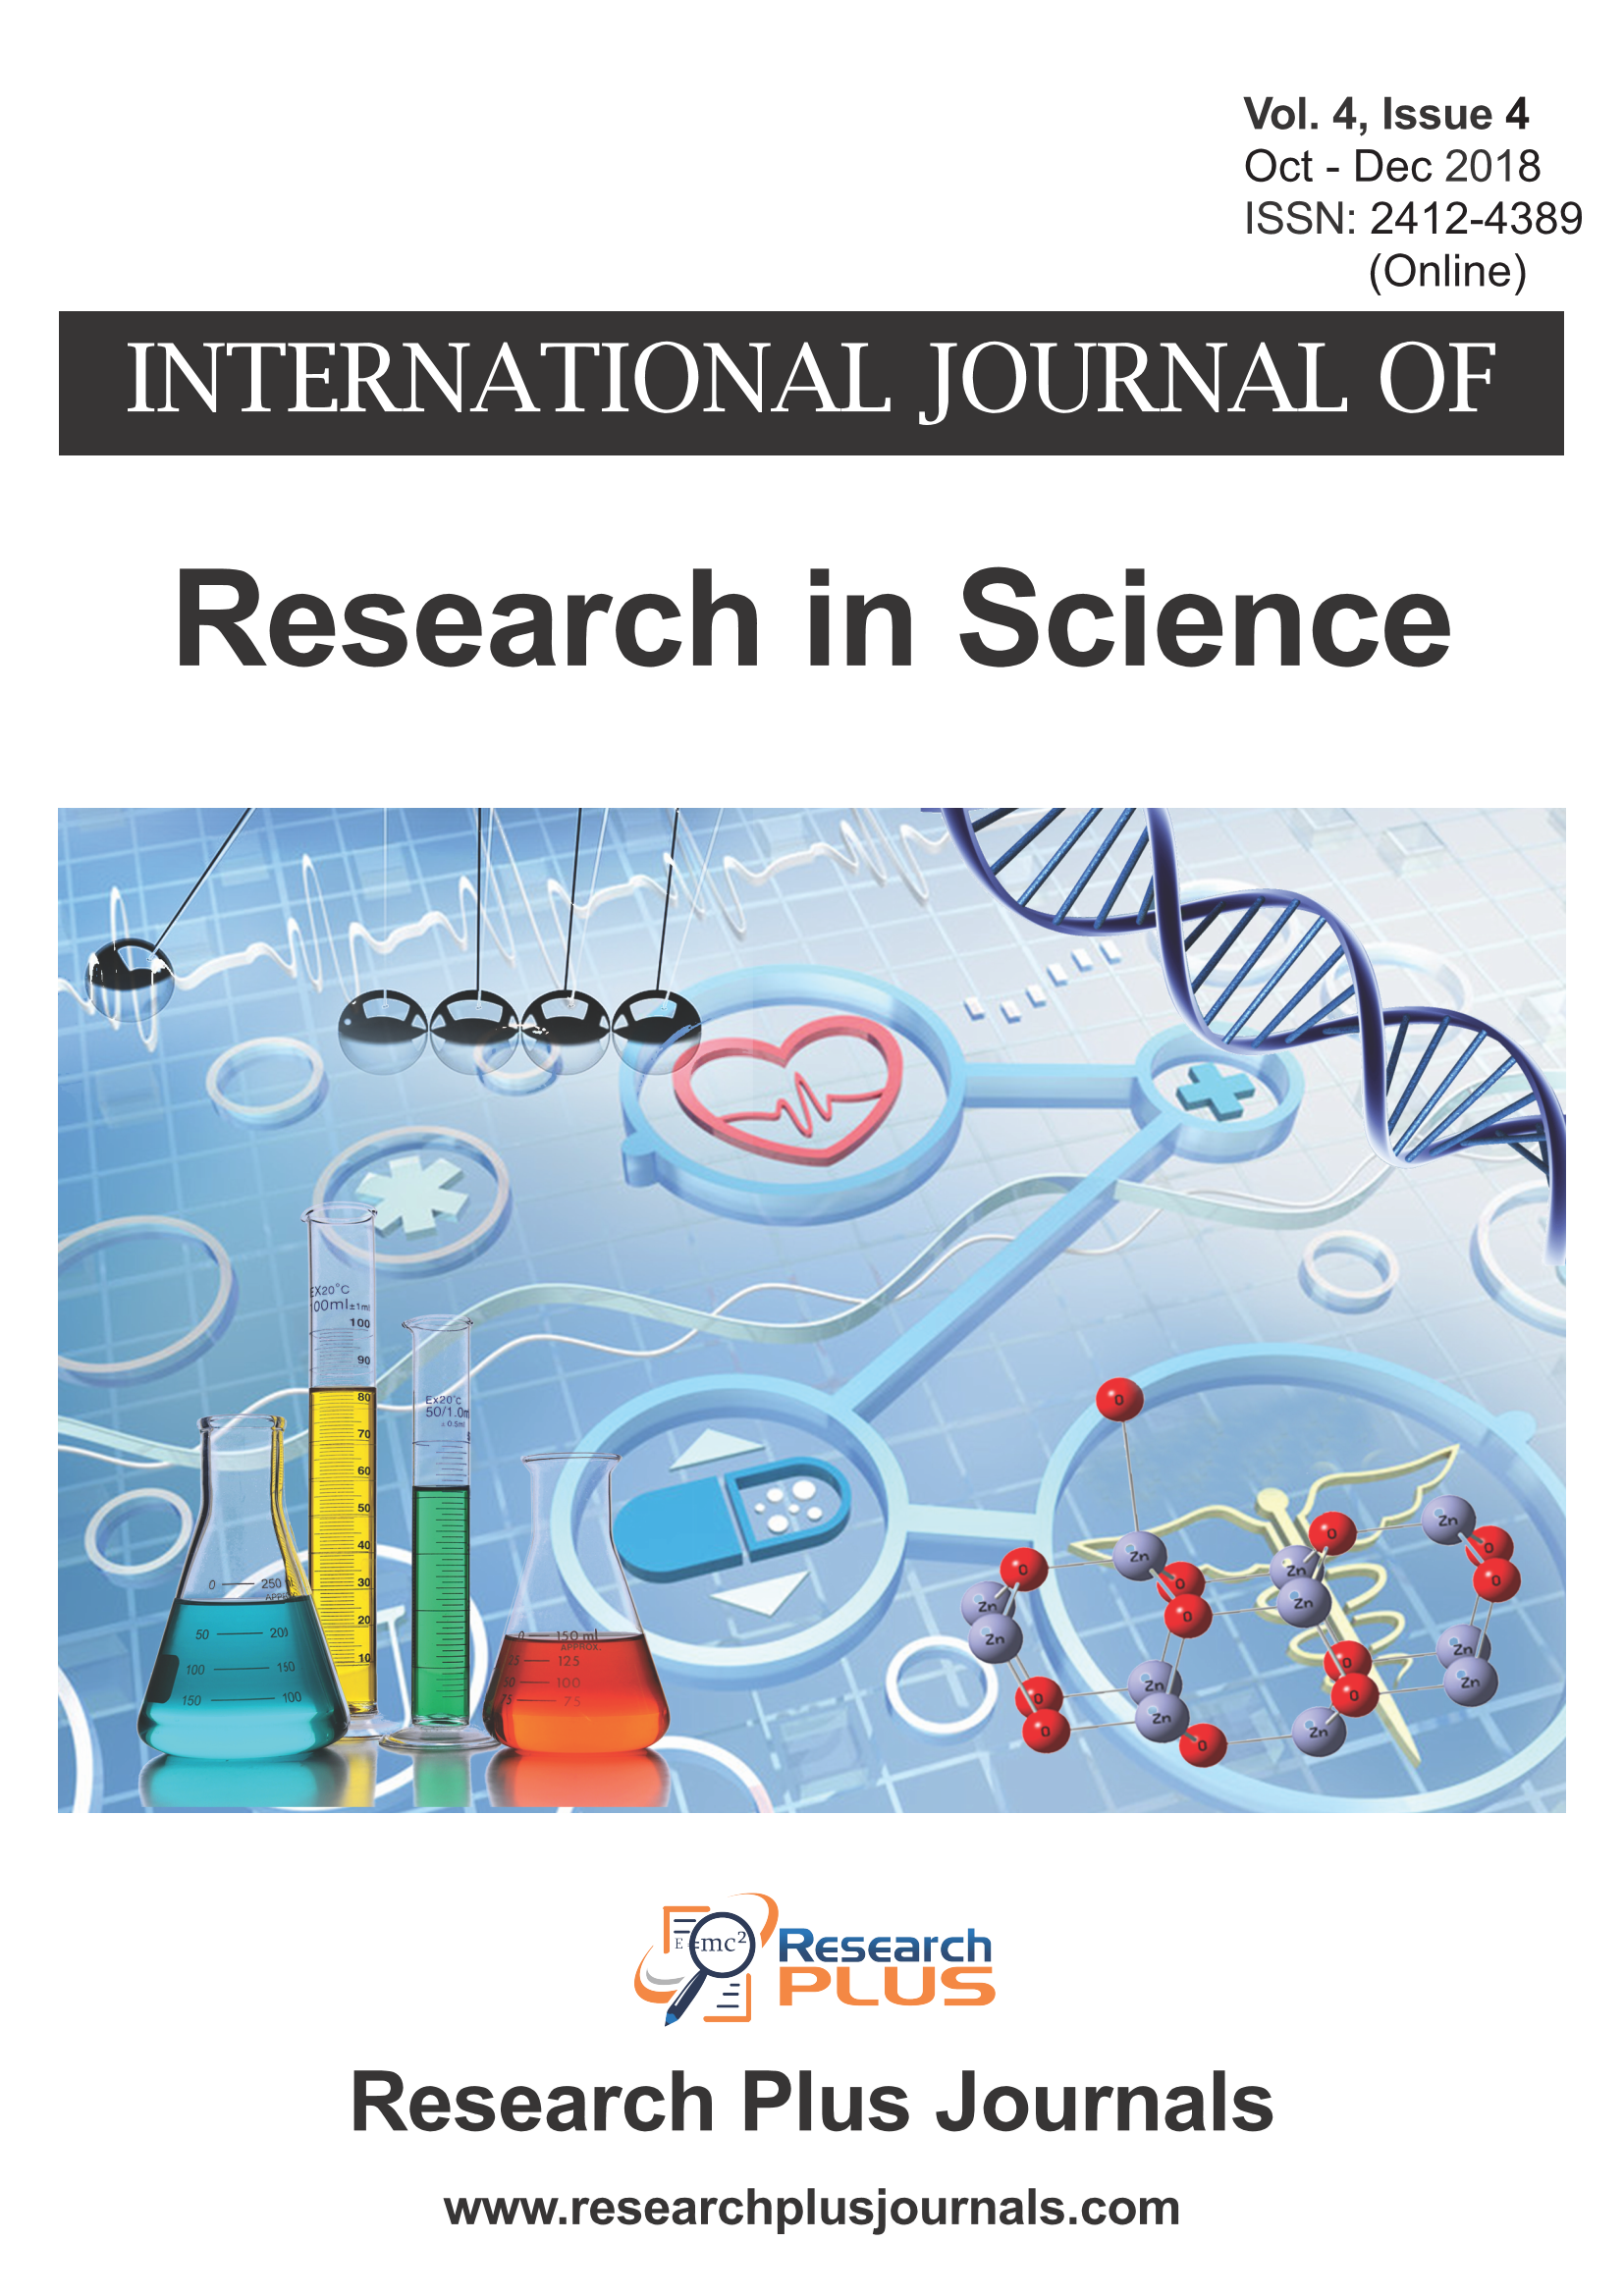 Volume 4, Issue 4, International Journal of Research in Science (IJRS) (Online ISSN 2412-4389)